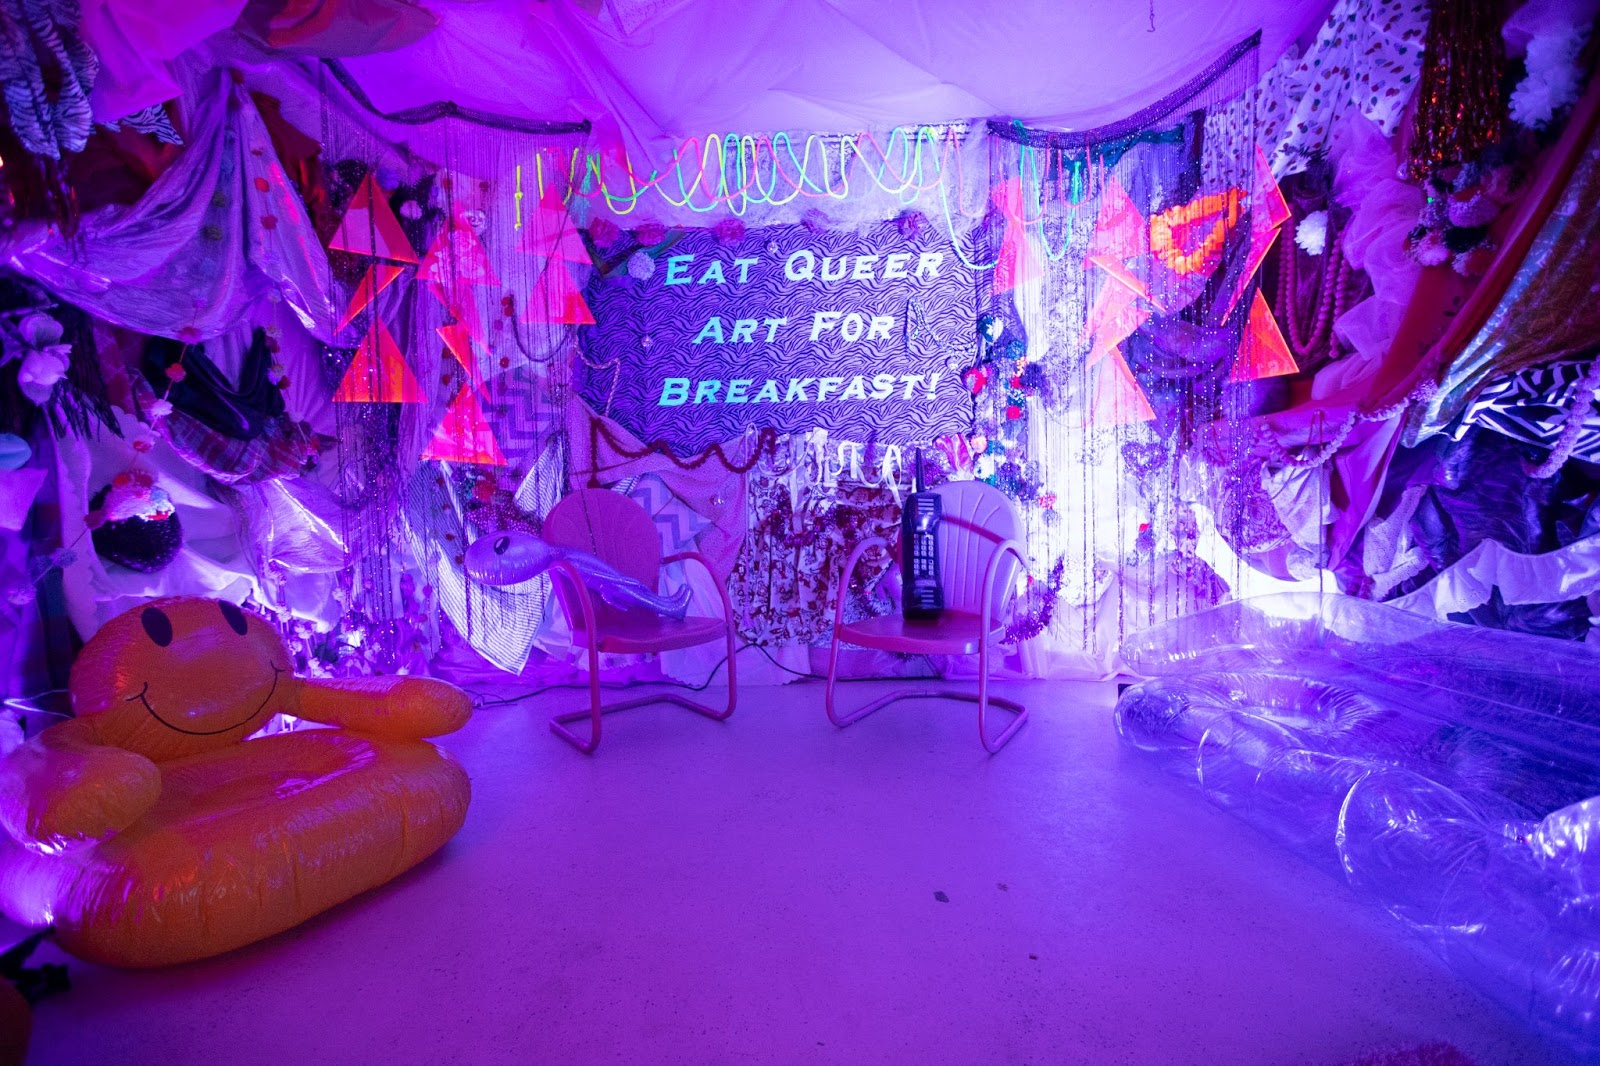 """Purple tinted room with a sign that says """"Eat Queer for Breakfast"""""""